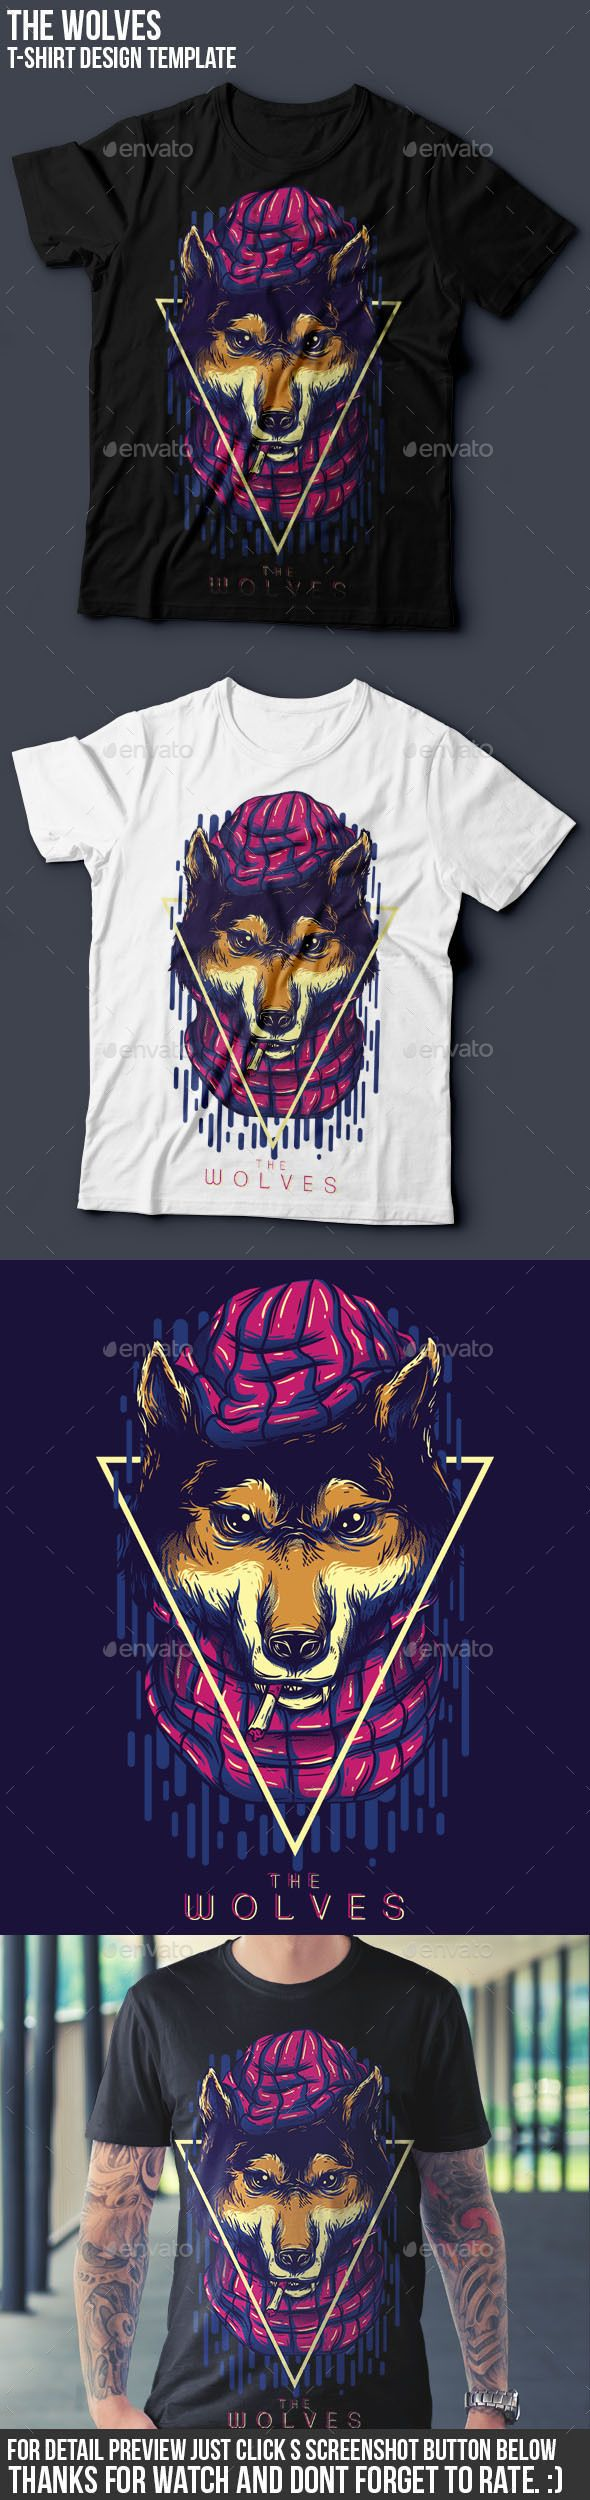 Design t shirt transfer template - The Wolves Part Iii T Shirt Design